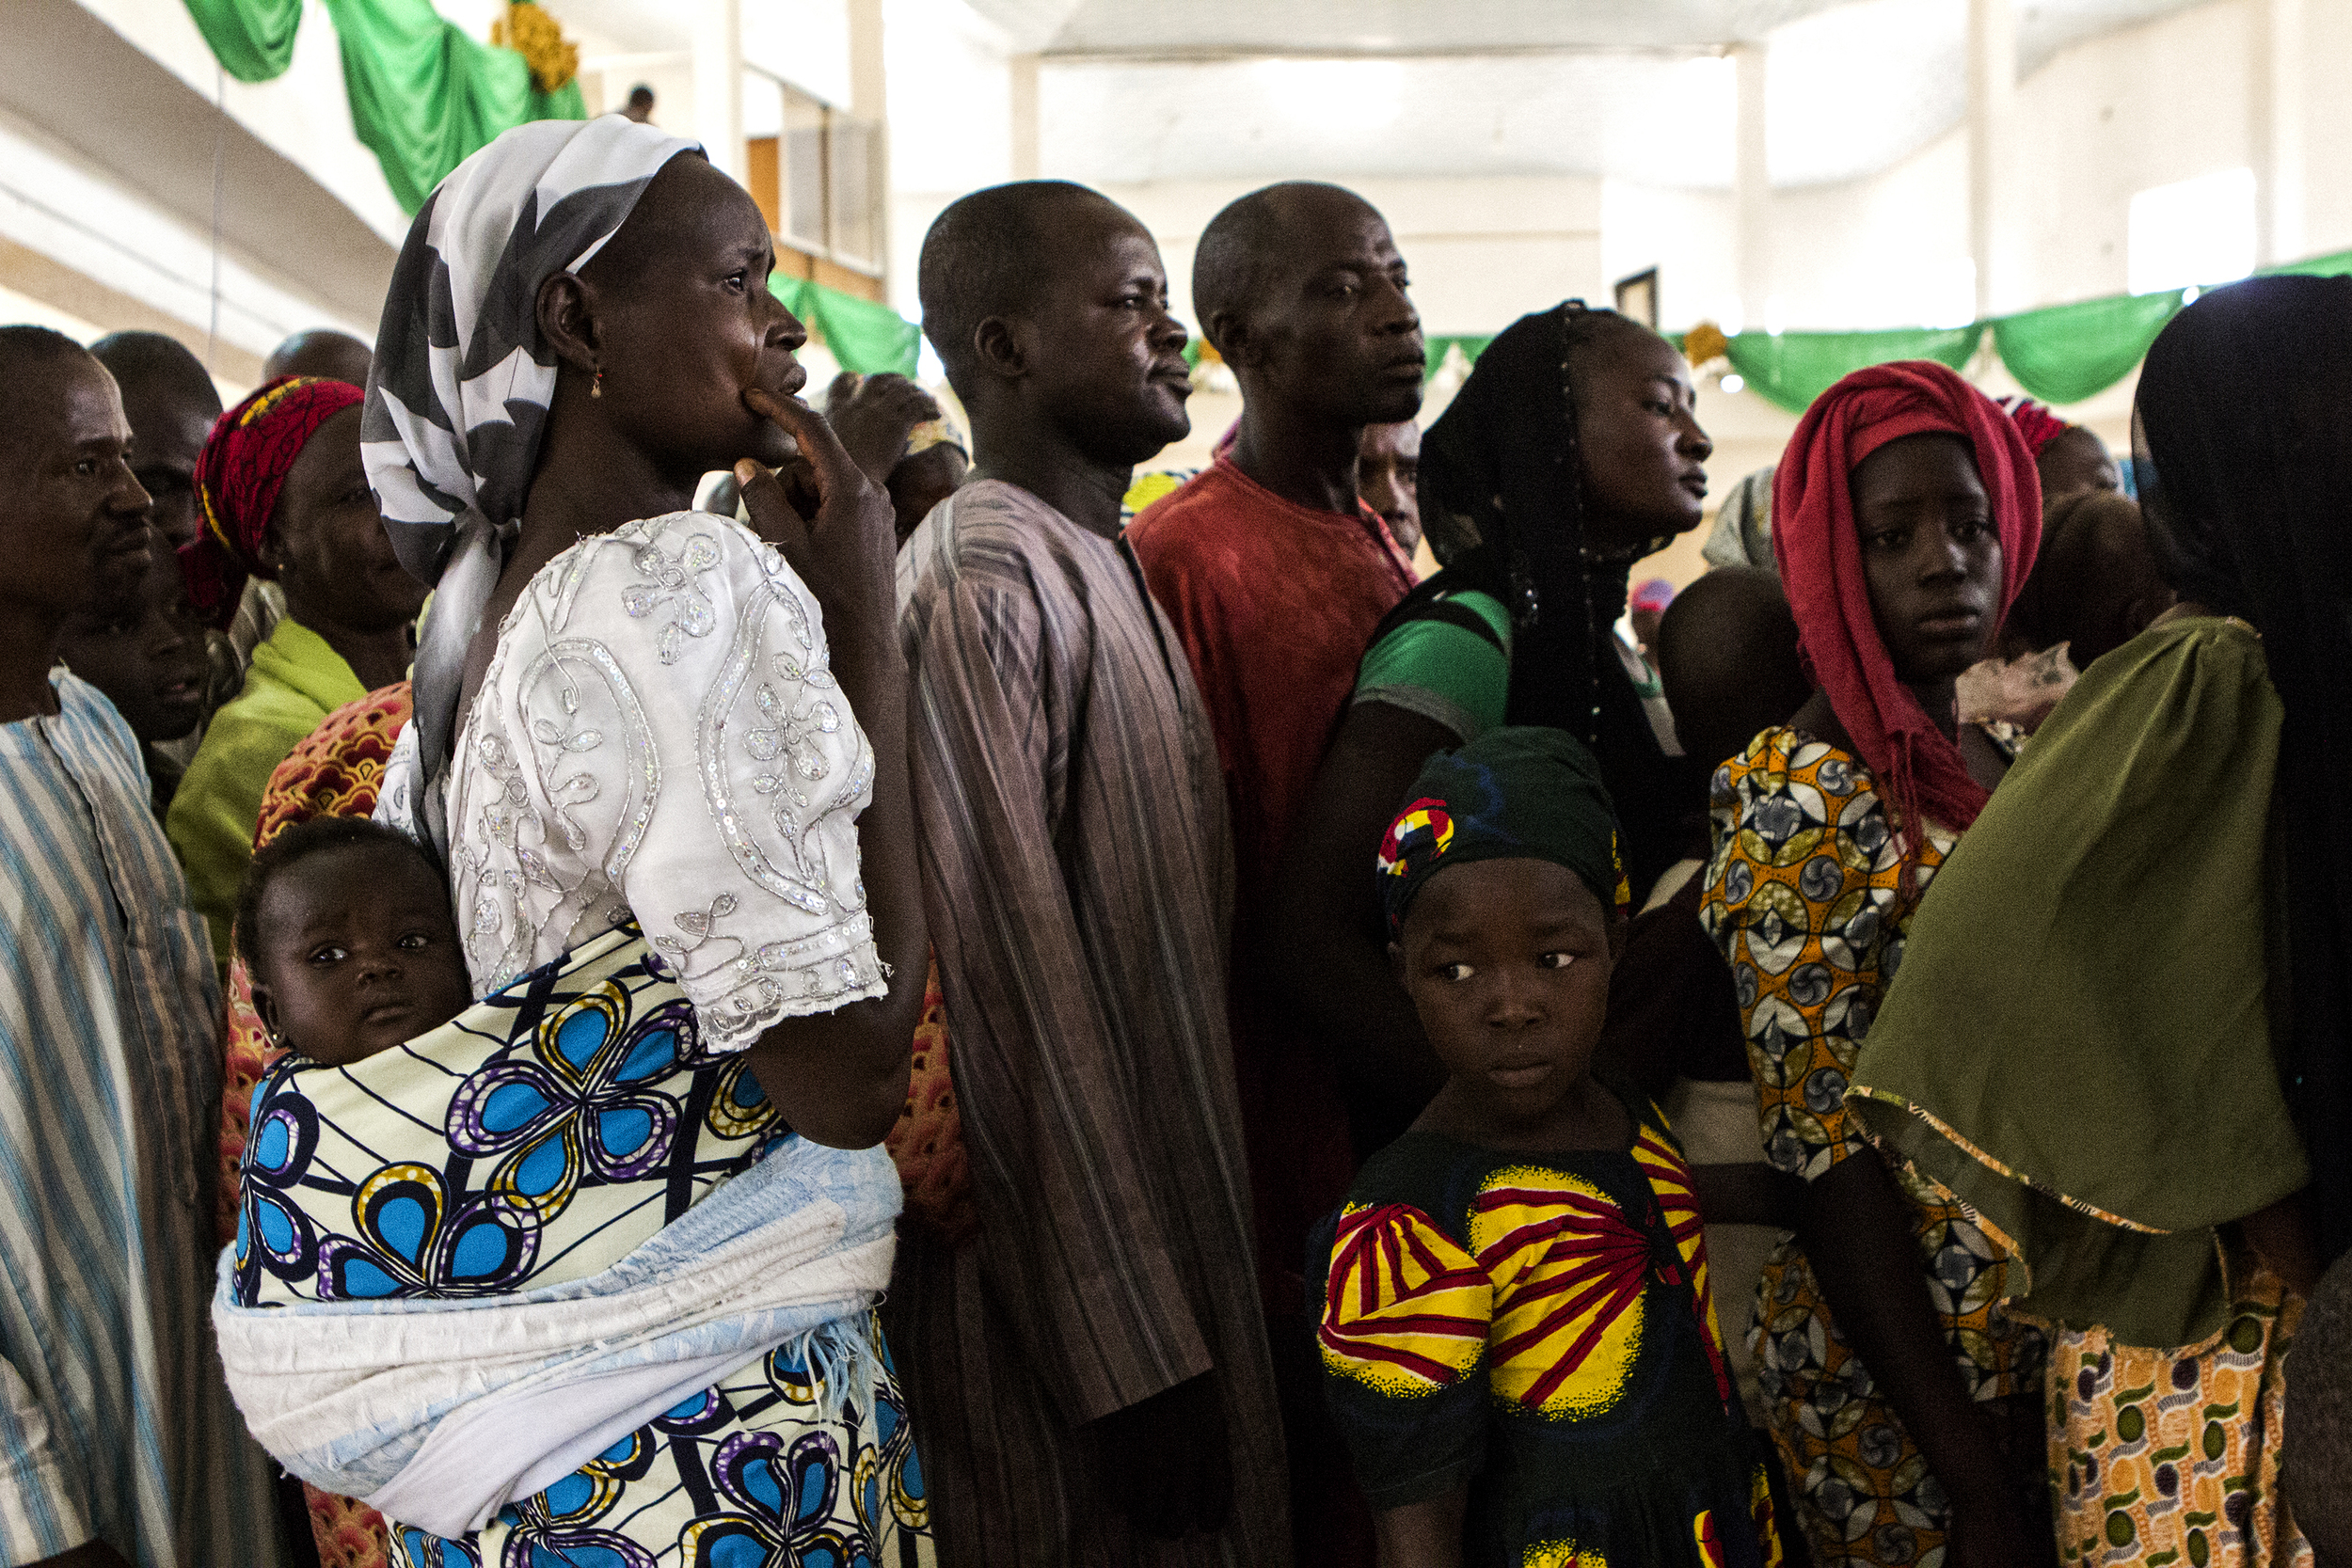 Yola, Nigeria. March 1 2015. Internally displaced people (IDPs) who have fled Boko Haram territory wait in line at a food distribution at a local church. Sometimes the process can take hours.